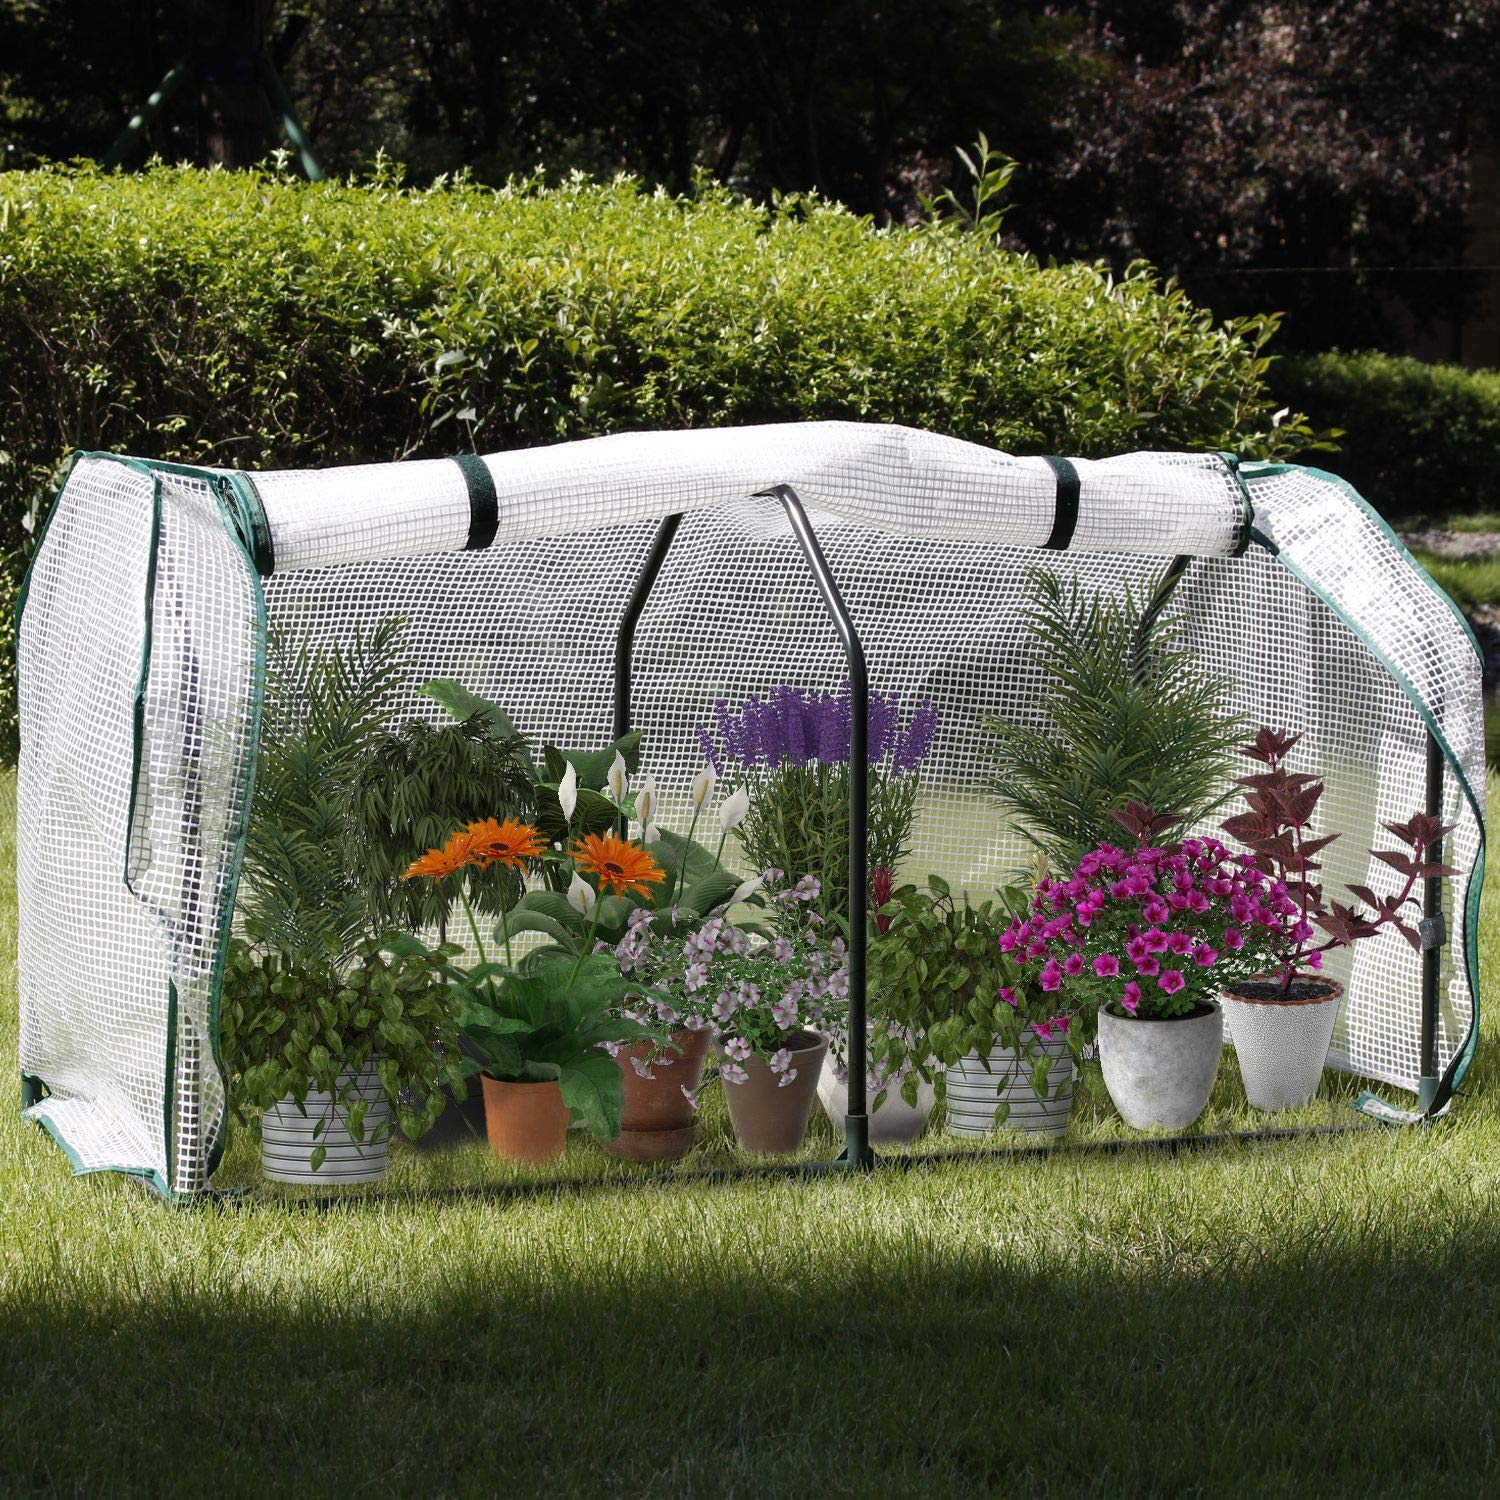 COZUHAUSE Mini Greenhouse with Clear Polyethylene Cover L48 W22 H24 Zipper Viewing Port Garden Green House